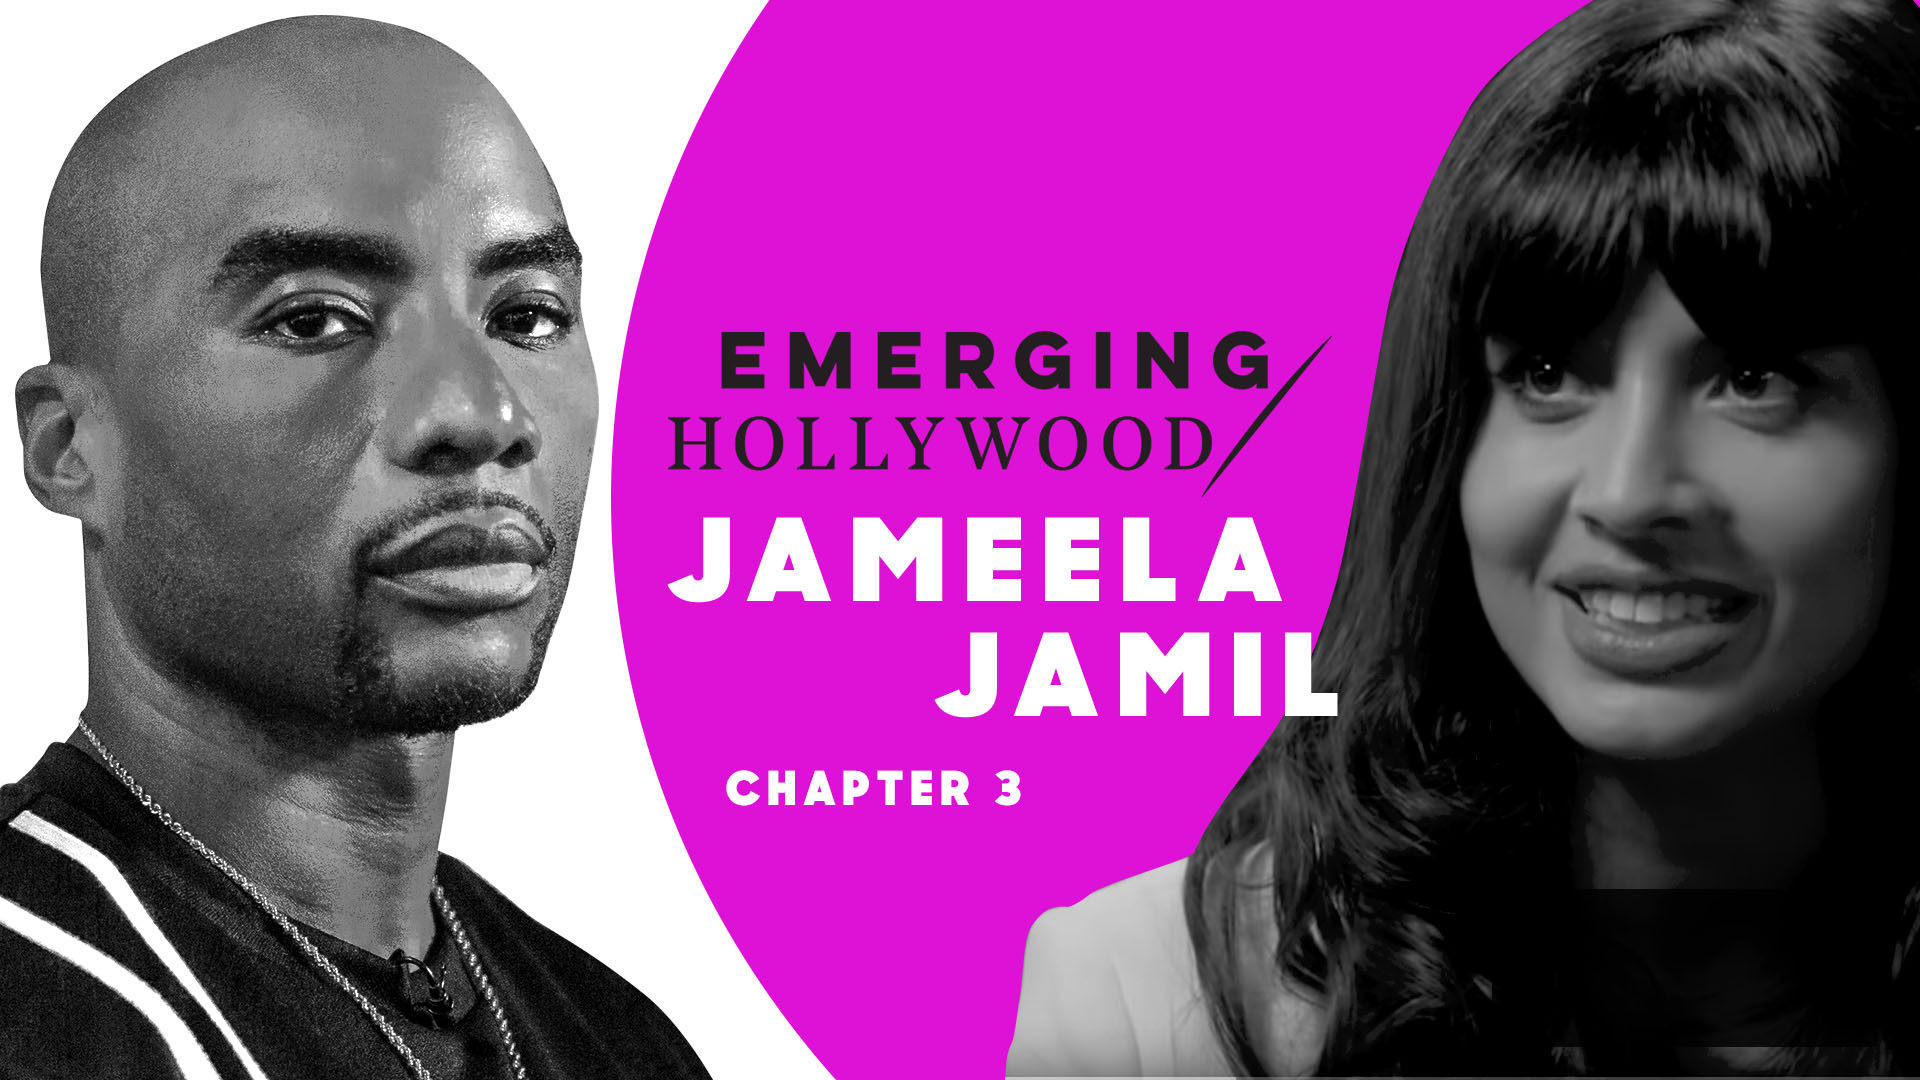 Jameela Jamil, Charlamagne tha God Talk Diversity on Screen, Roles for Women | Emerging Hollywood: Where I'm Going